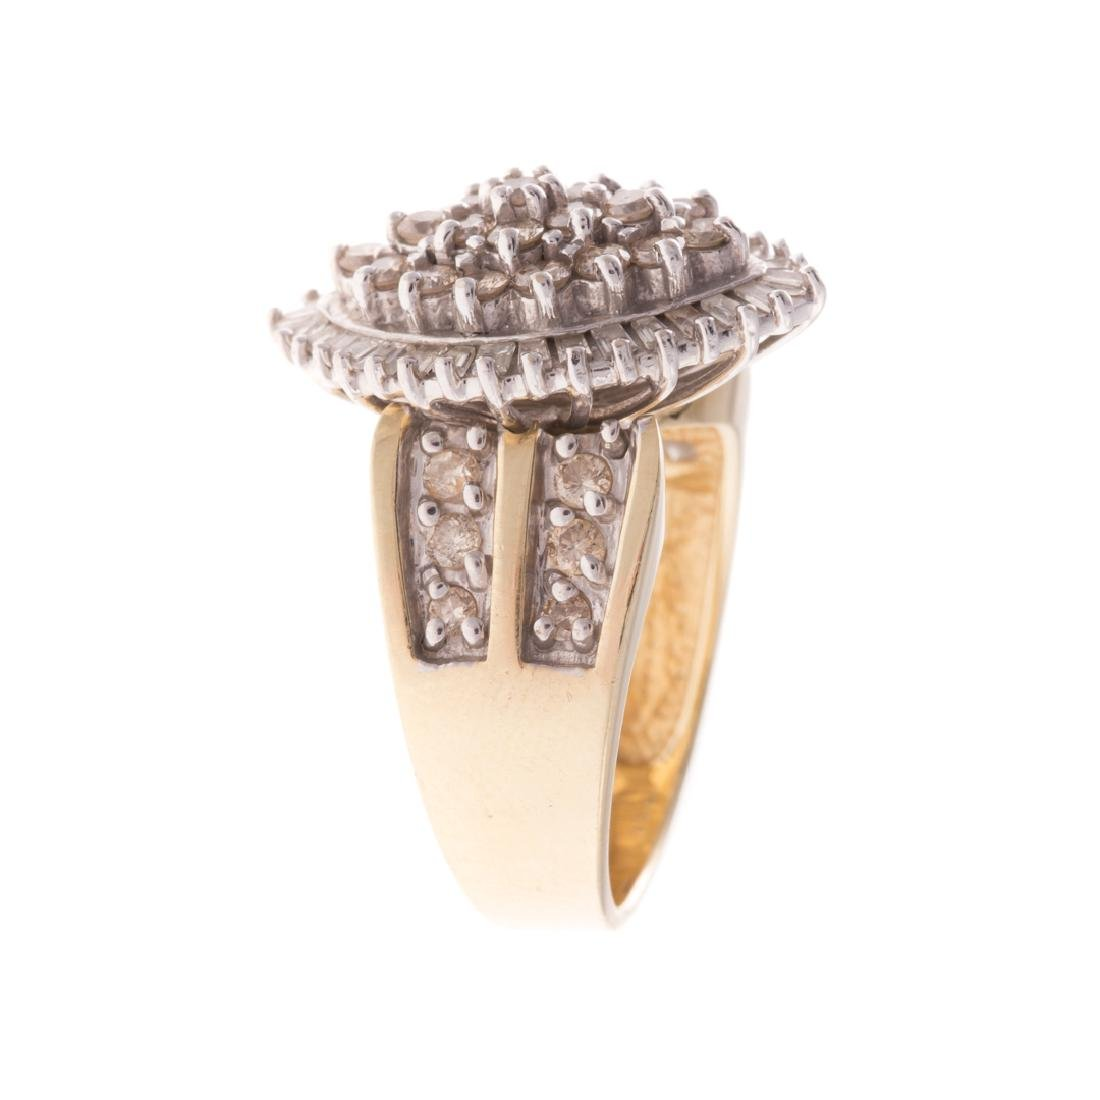 A Lady's Diamond Cocktail Ring in 14K Gold - 2